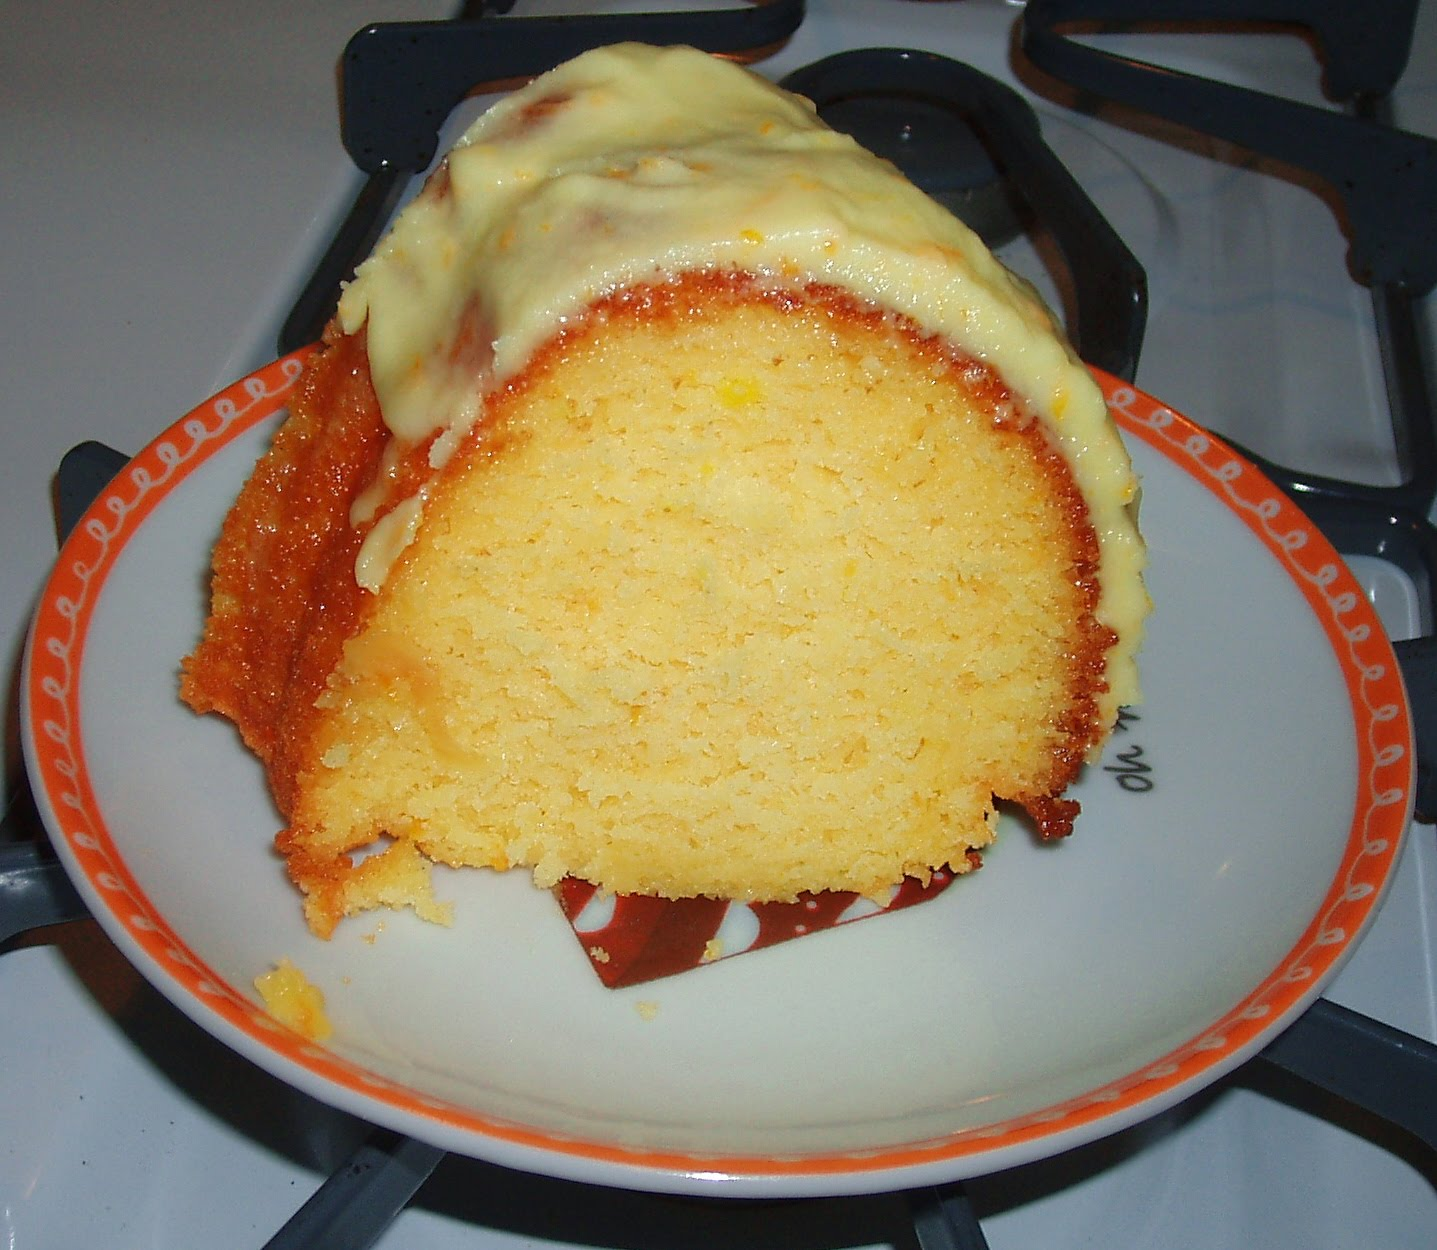 The Pastry Chef's Baking: Orange Buttermilk Cake